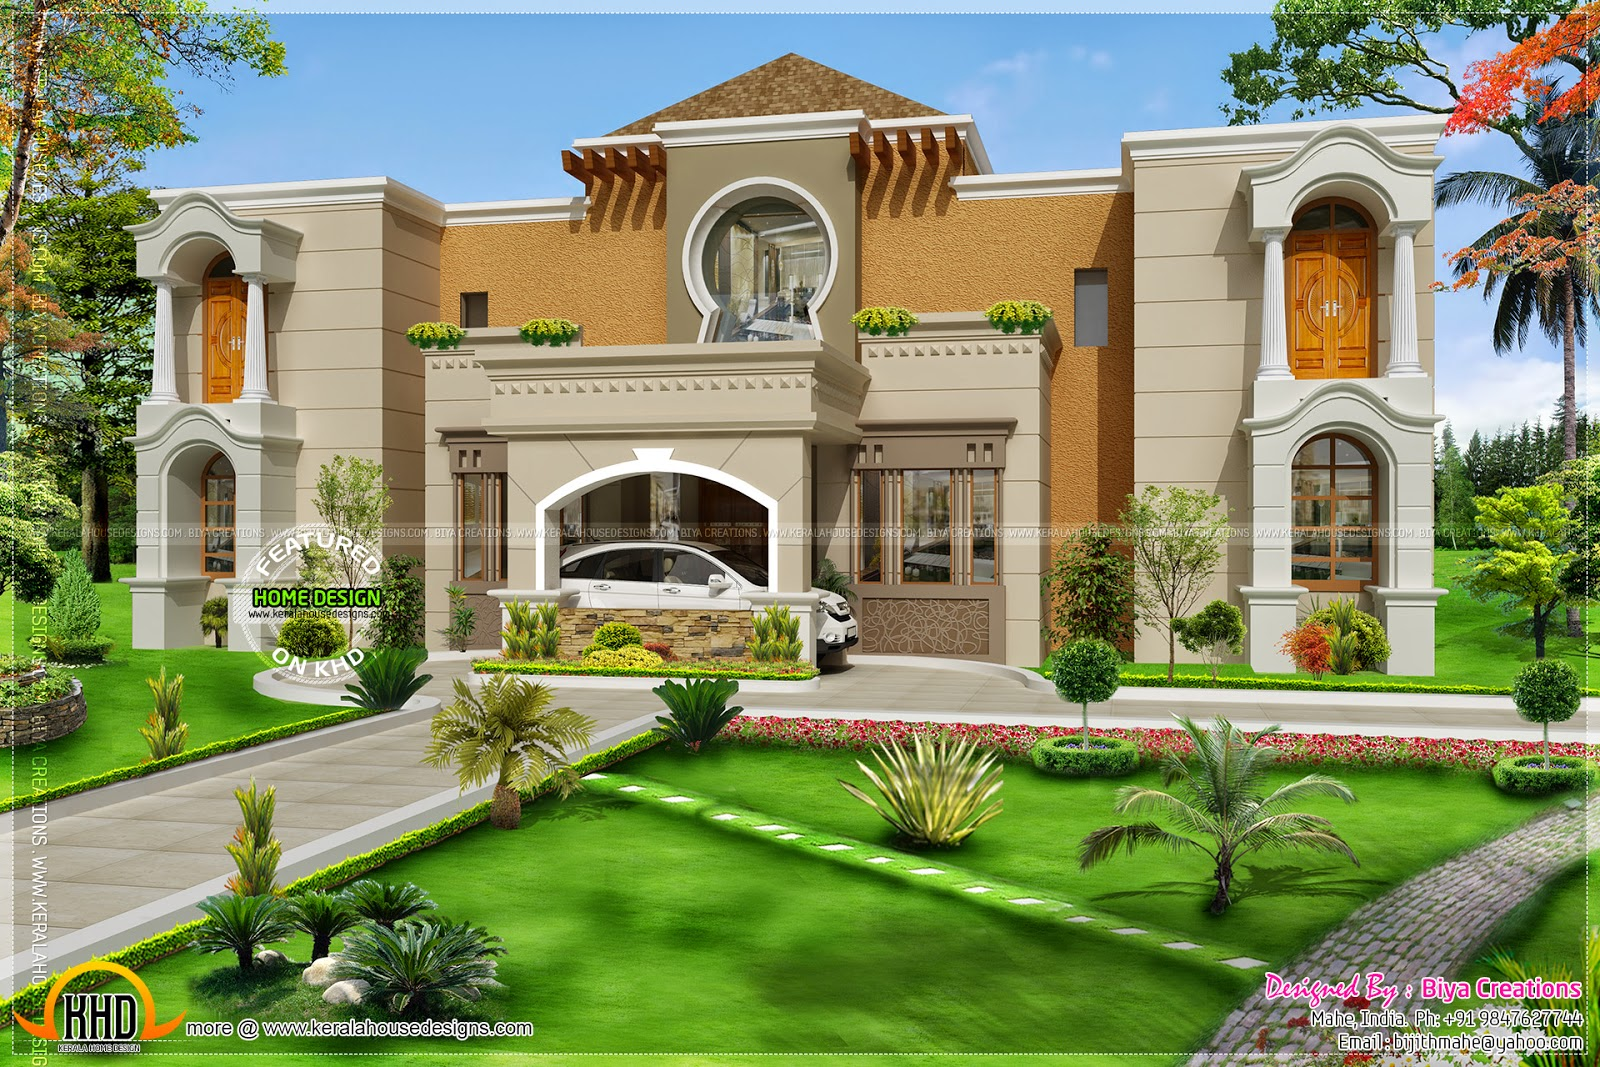 Arab style home in india kerala home design and floor plans for Villas designs photos